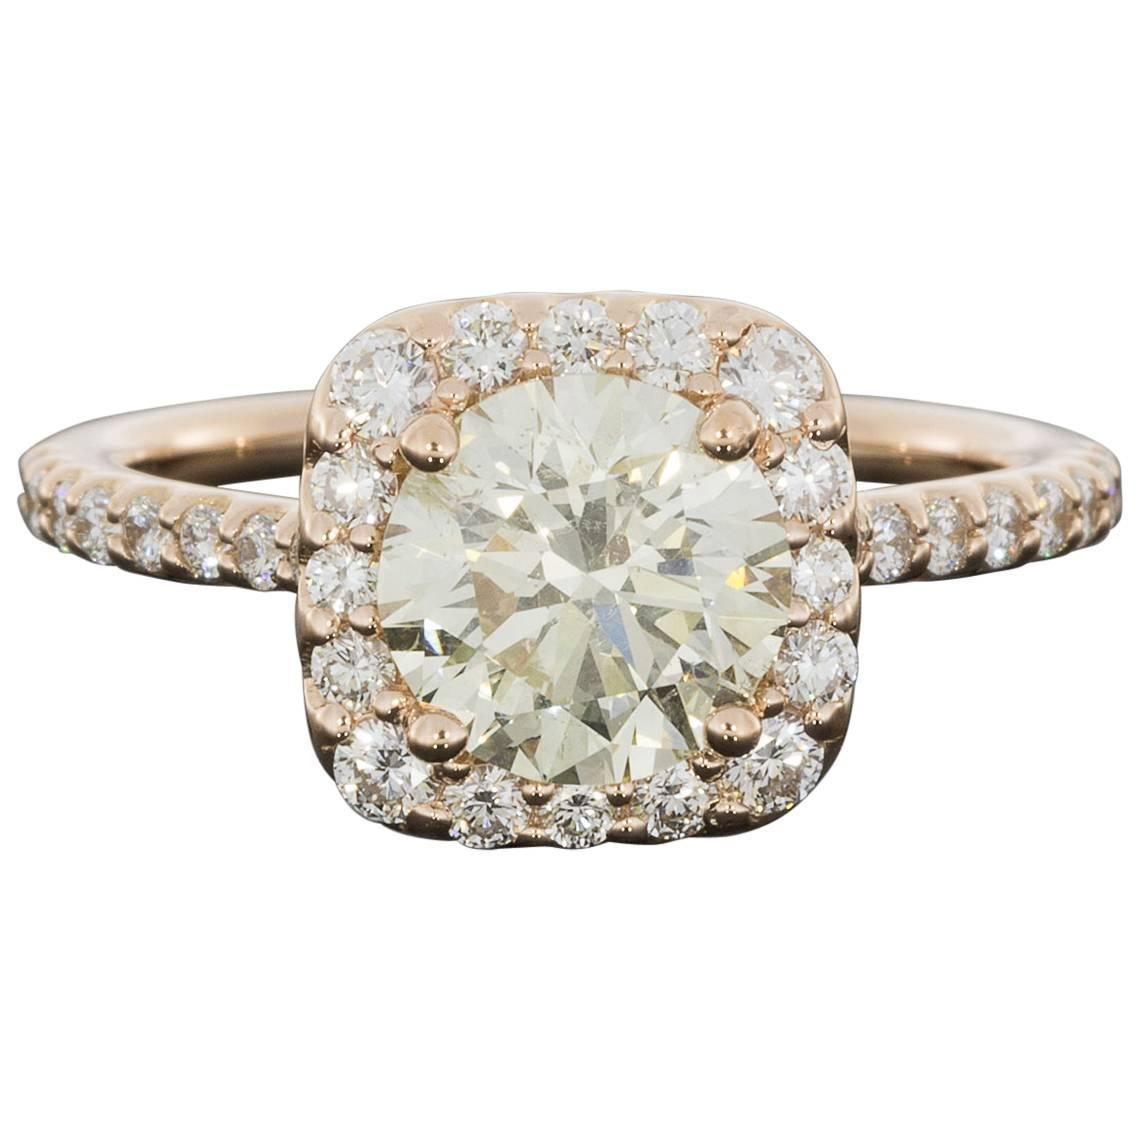 Ritani Rose Gold 2 21 Carats Round Diamond Halo Engagement Ring For Sale at 1